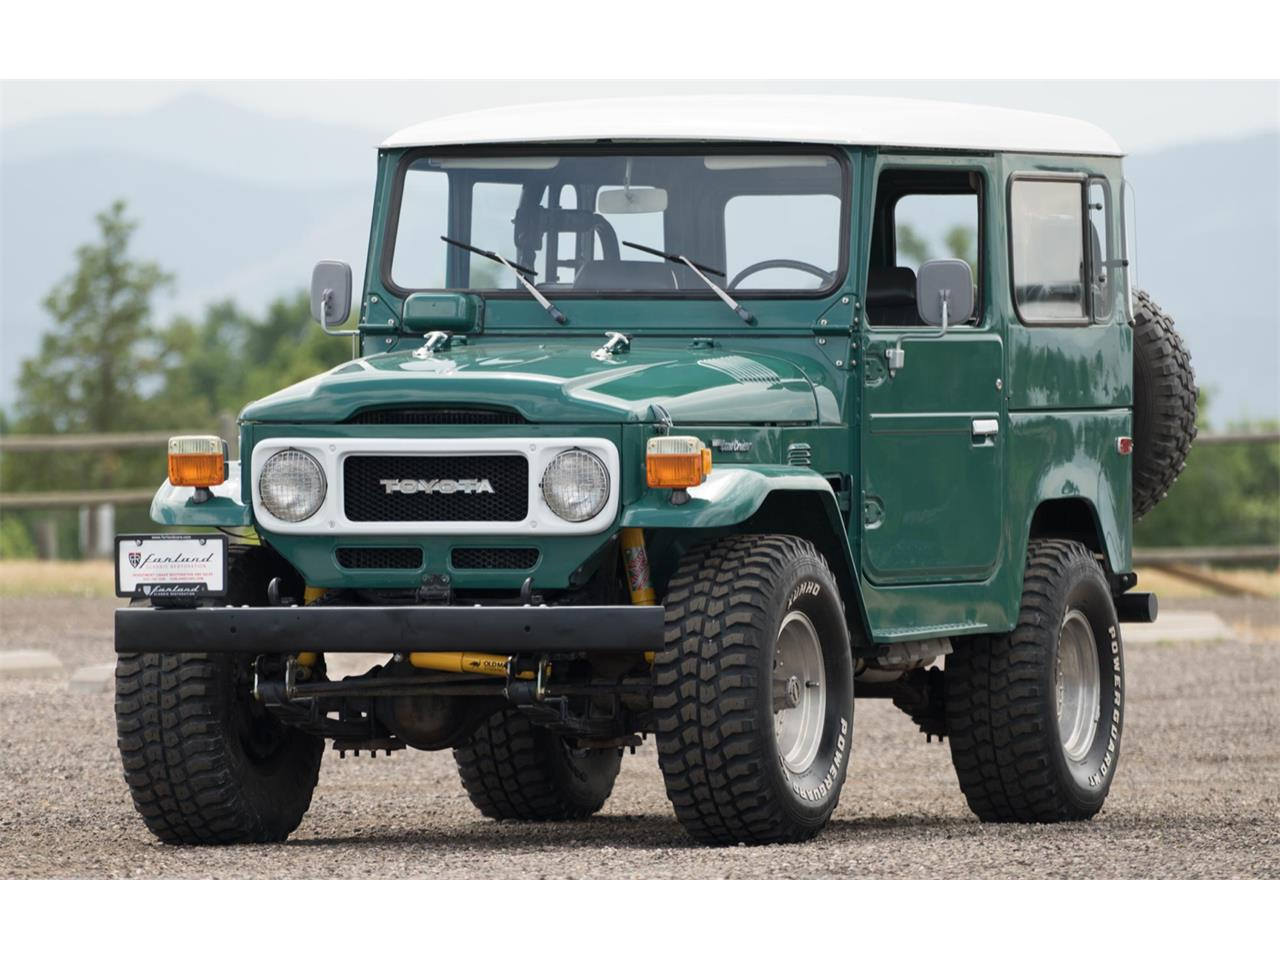 For Sale: 1980 Toyota Land Cruiser FJ40 in Englewood, Colorado